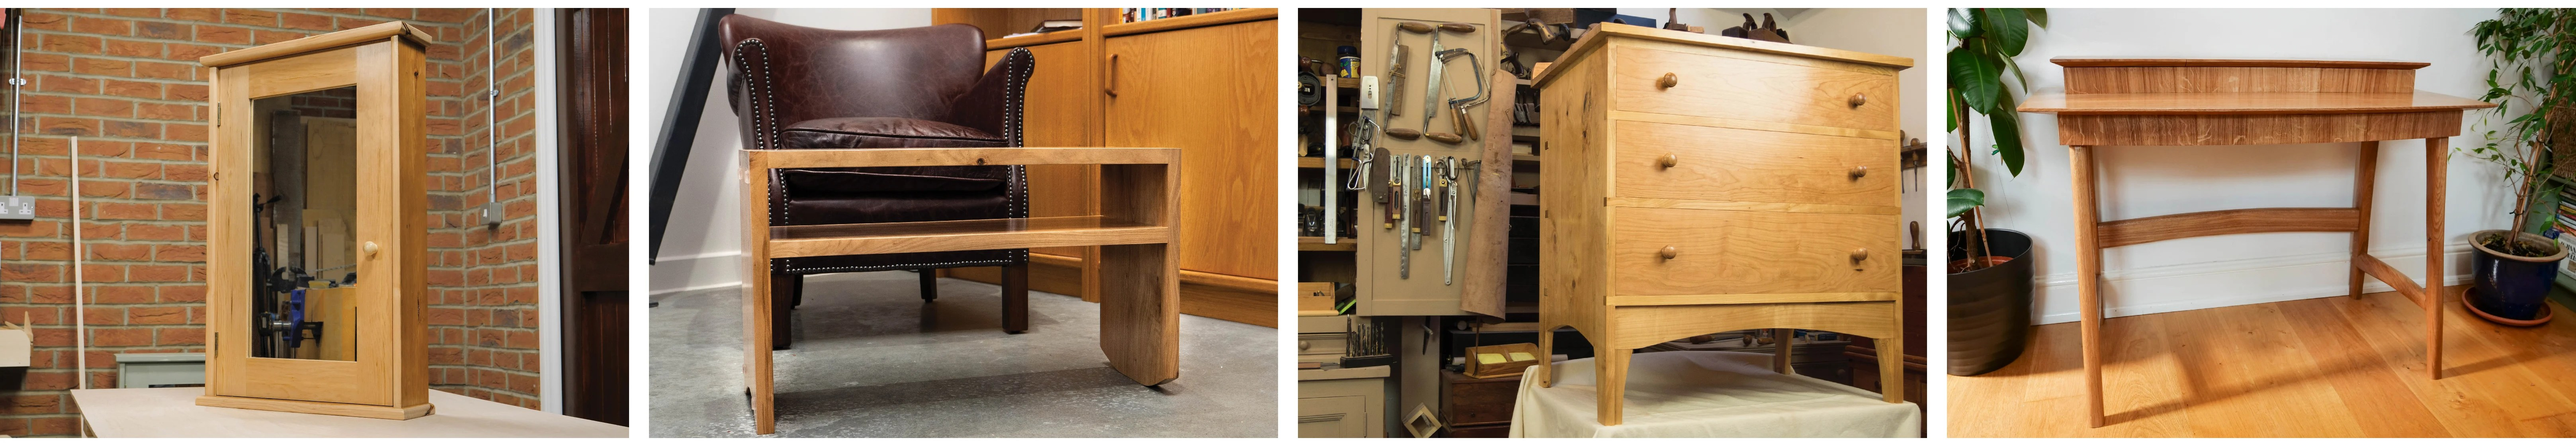 Four of Paul's Projects: The Bathroom Cabinet, Sofa Server, Chest of Drawers and Laptop Desk